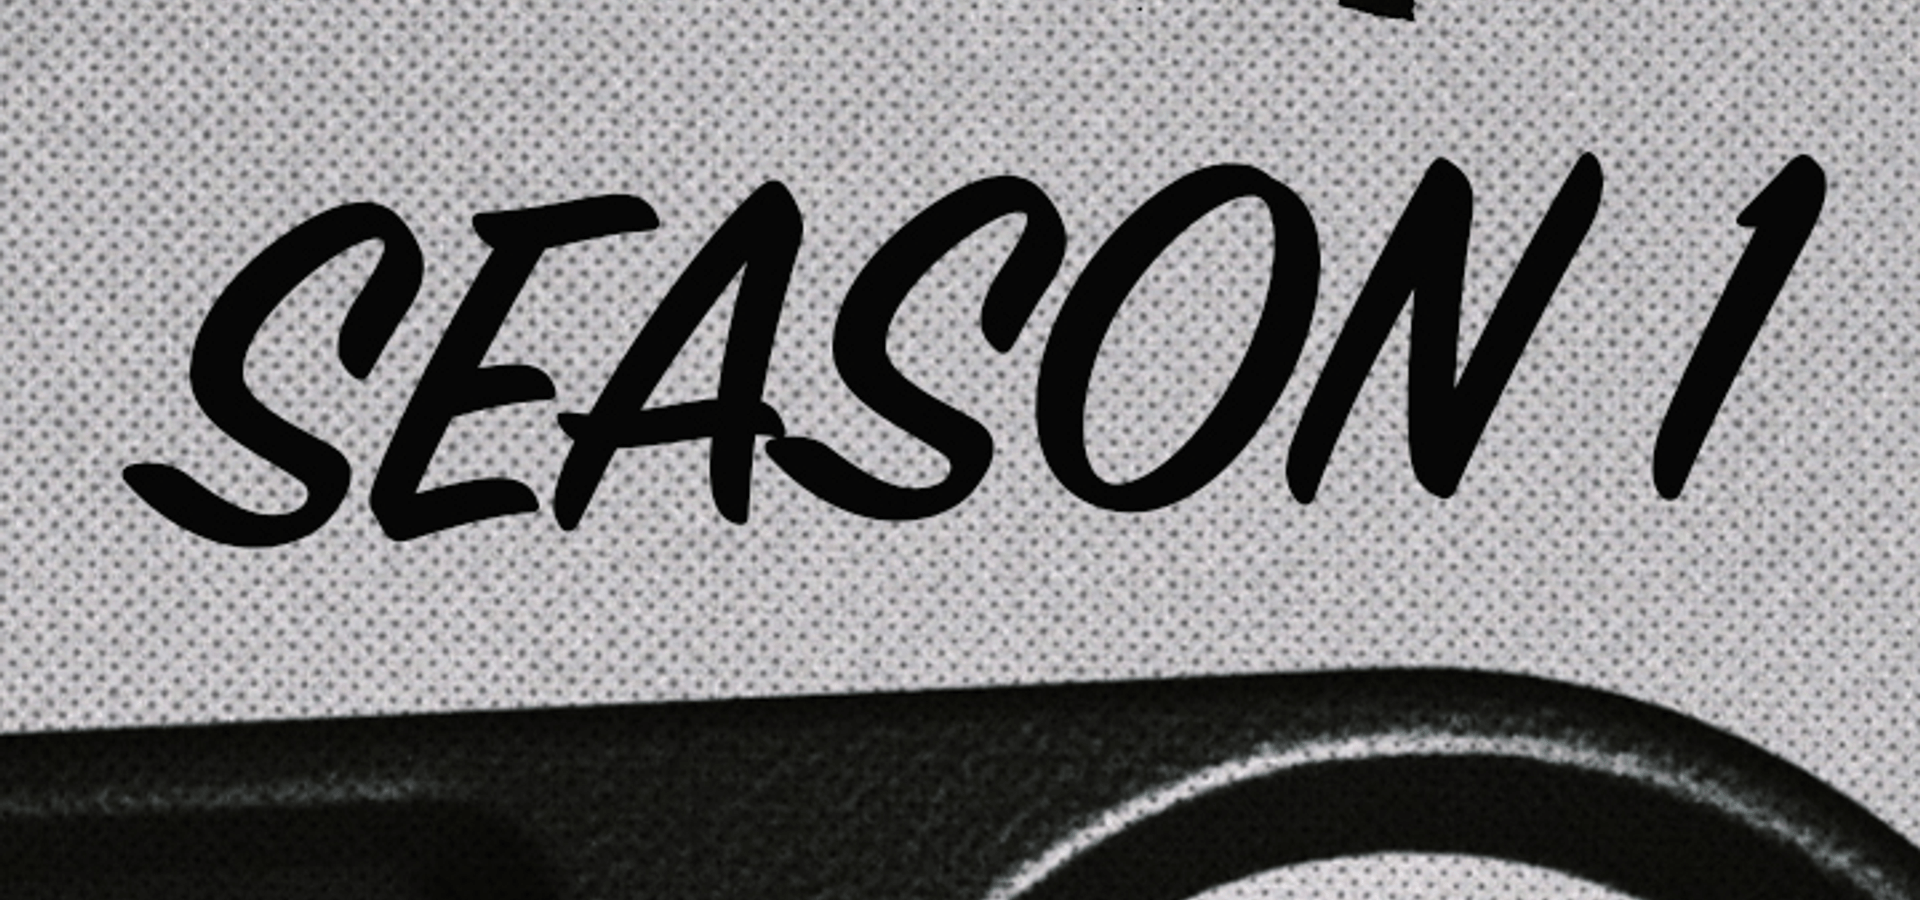 Mixtape – Season 1